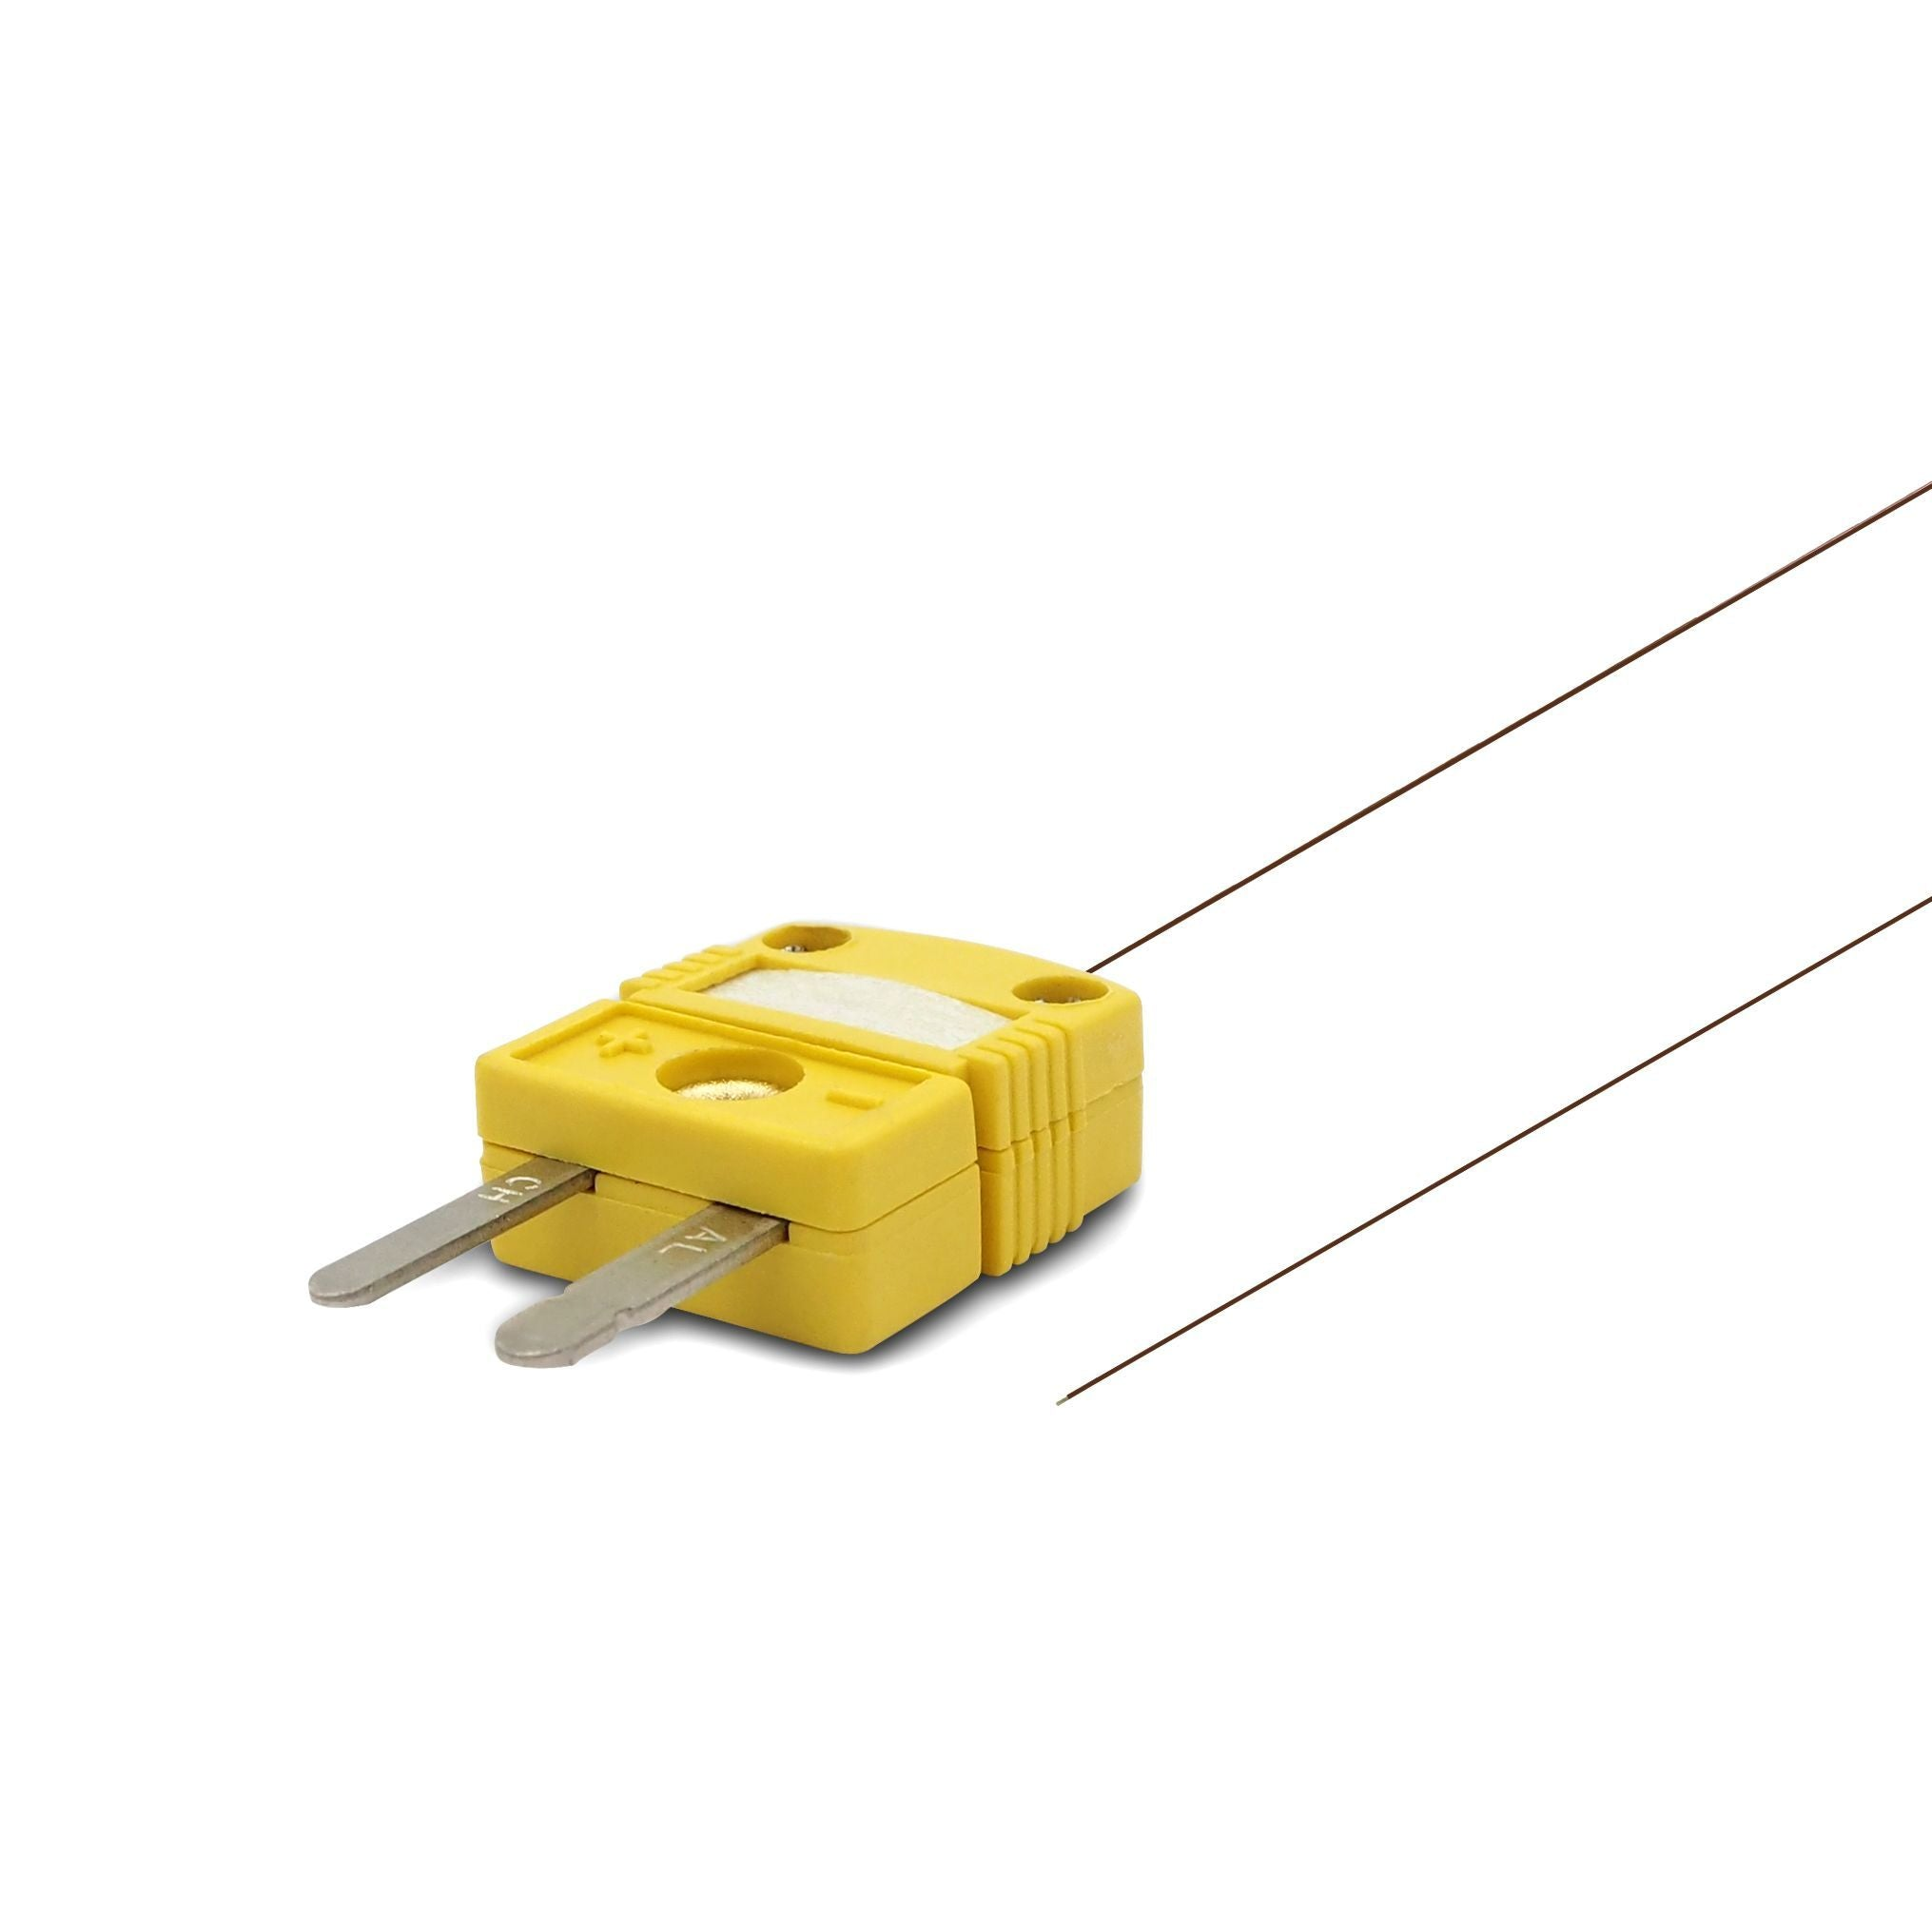 K-Type Sensor Probe for K-Type Thermocouple, Flat